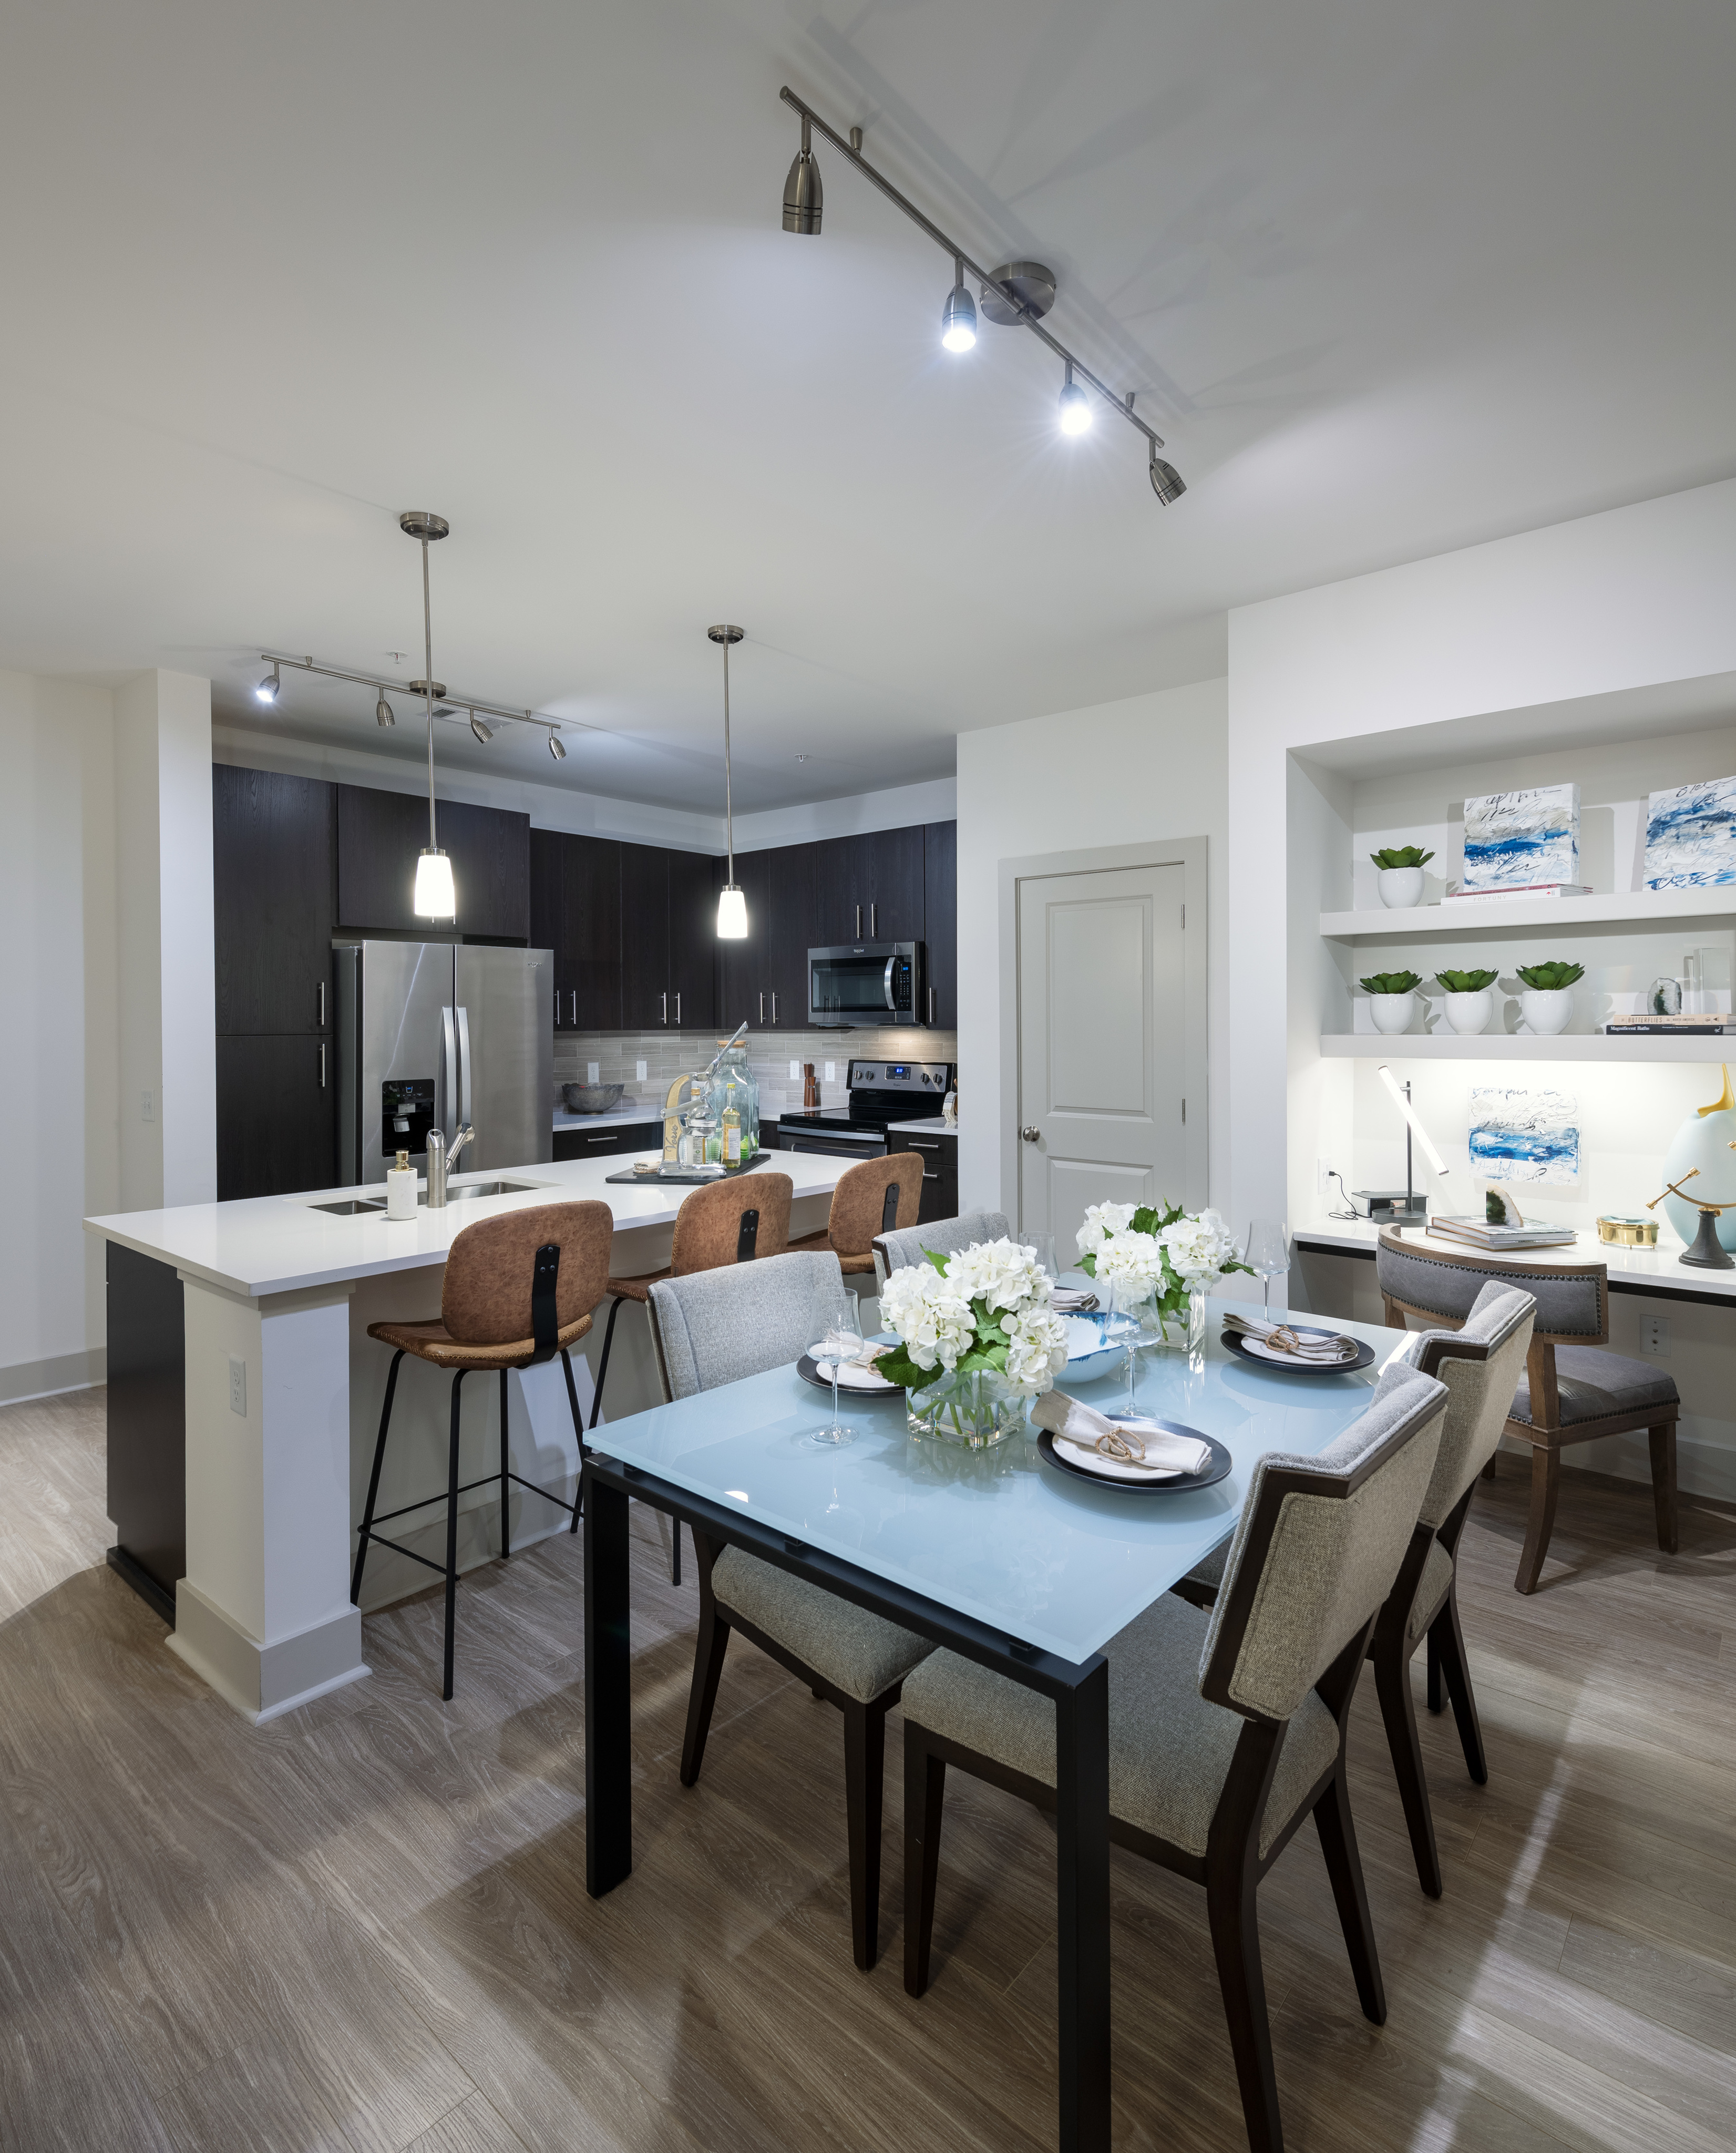 Image of Frameless Custom Cabinetry, Spacious kitchen islands and pantries* for Hanover Westford Valley